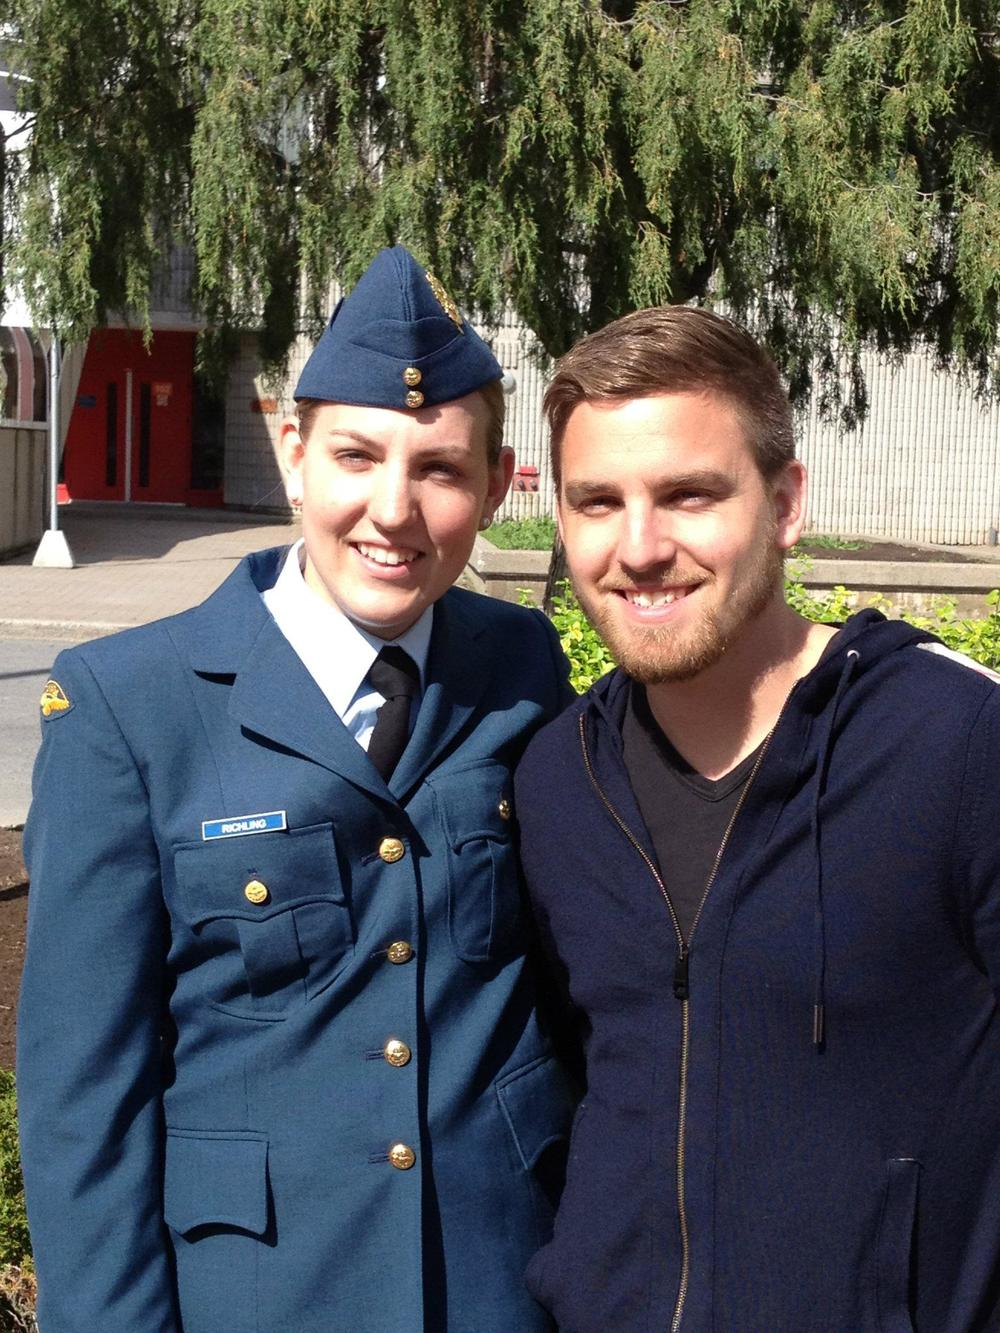 Matt with his sister Monika on her basic graduation at Saint-Jean-sur-Richelieu, Quebec in May 2012